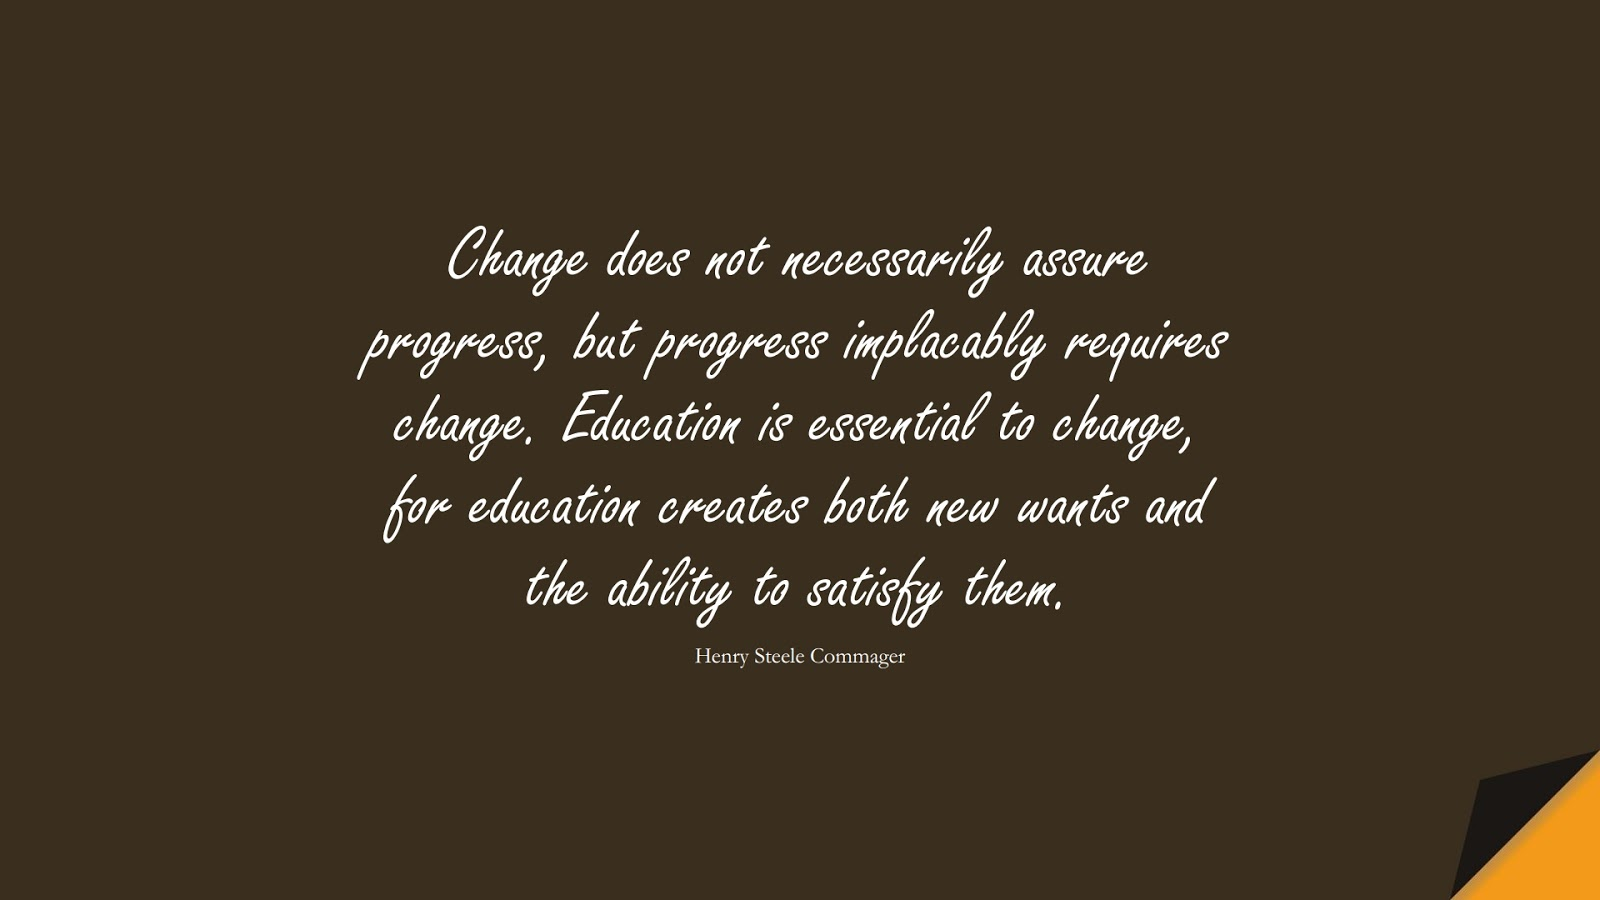 Change does not necessarily assure progress, but progress implacably requires change. Education is essential to change, for education creates both new wants and the ability to satisfy them. (Henry Steele Commager);  #ChangeQuotes